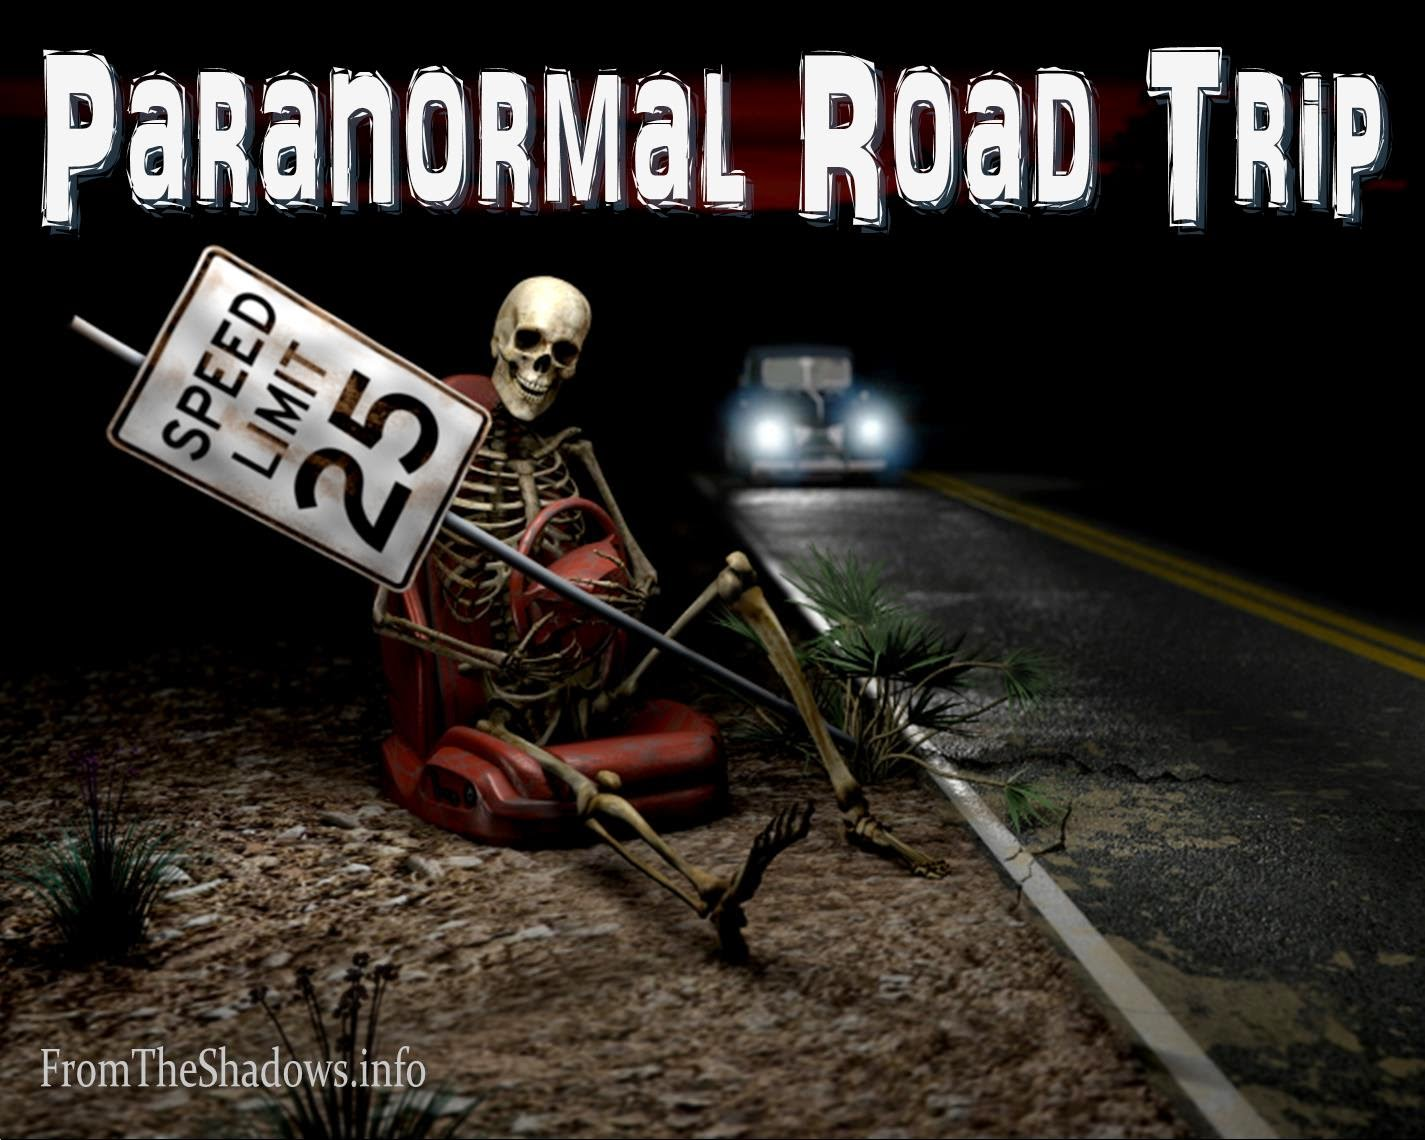 Paranormal Road Trip: Destination Spokane Washington with Cathy Clamp